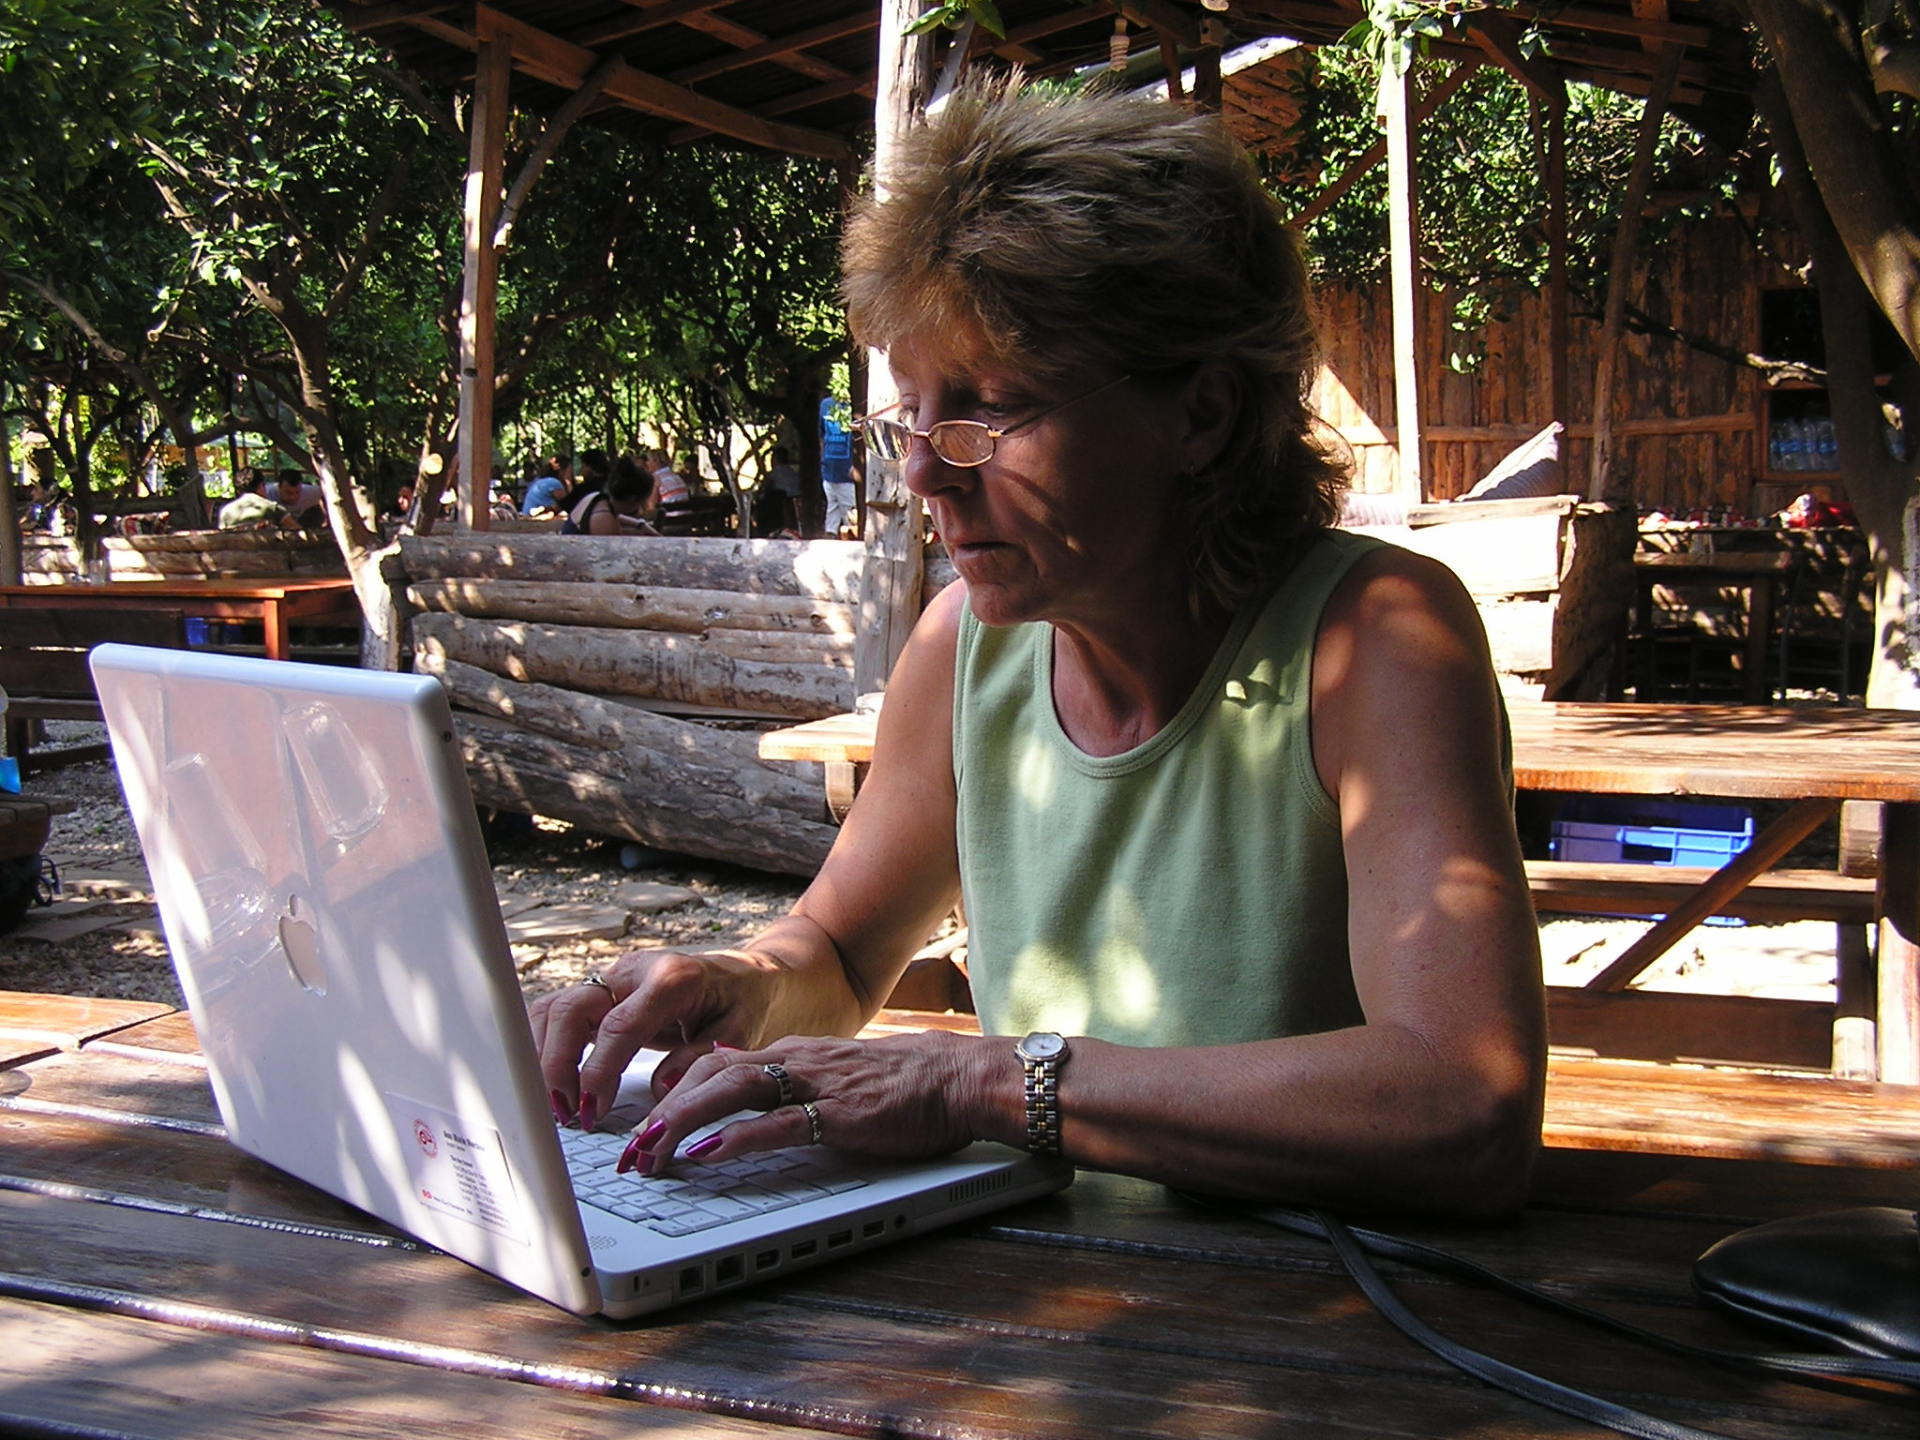 Susie checked her e-mail in the open courtyard at Bayram's. Olympos, Turkey: chapter 60, You must only to love them. http://mershon.wordpress.com